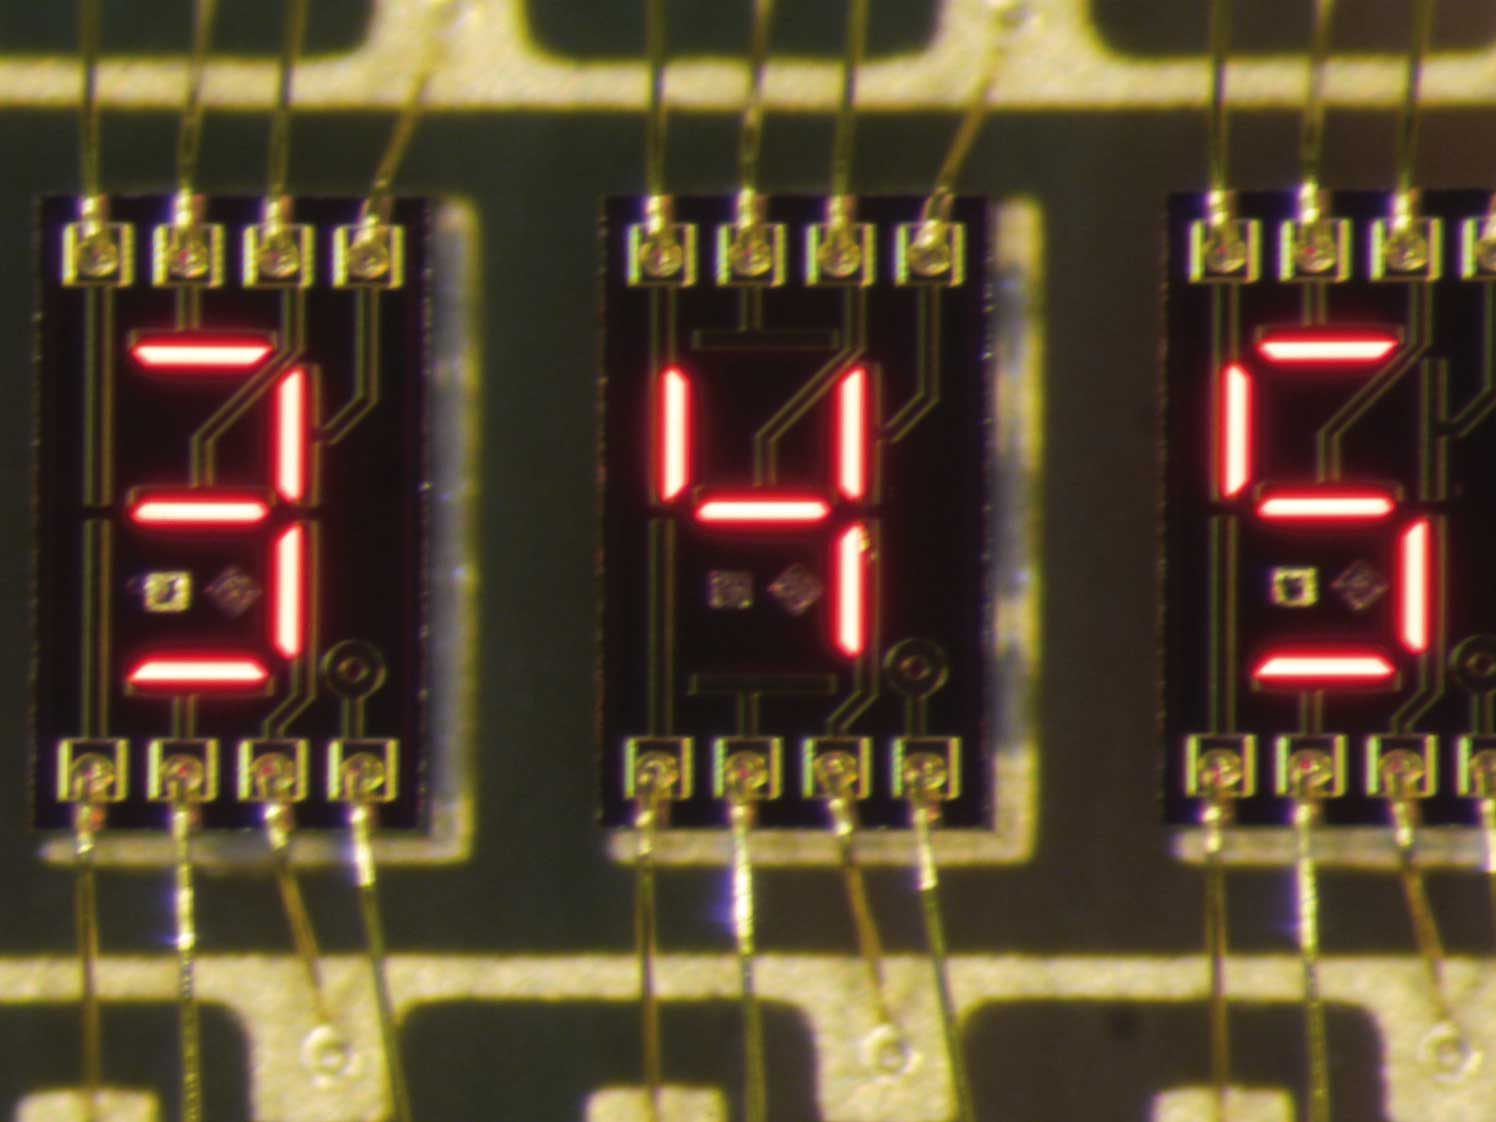 Miniature Led Display Modules Jenoptik Board Circuit From Efficient And Power Saving For Optical Devices